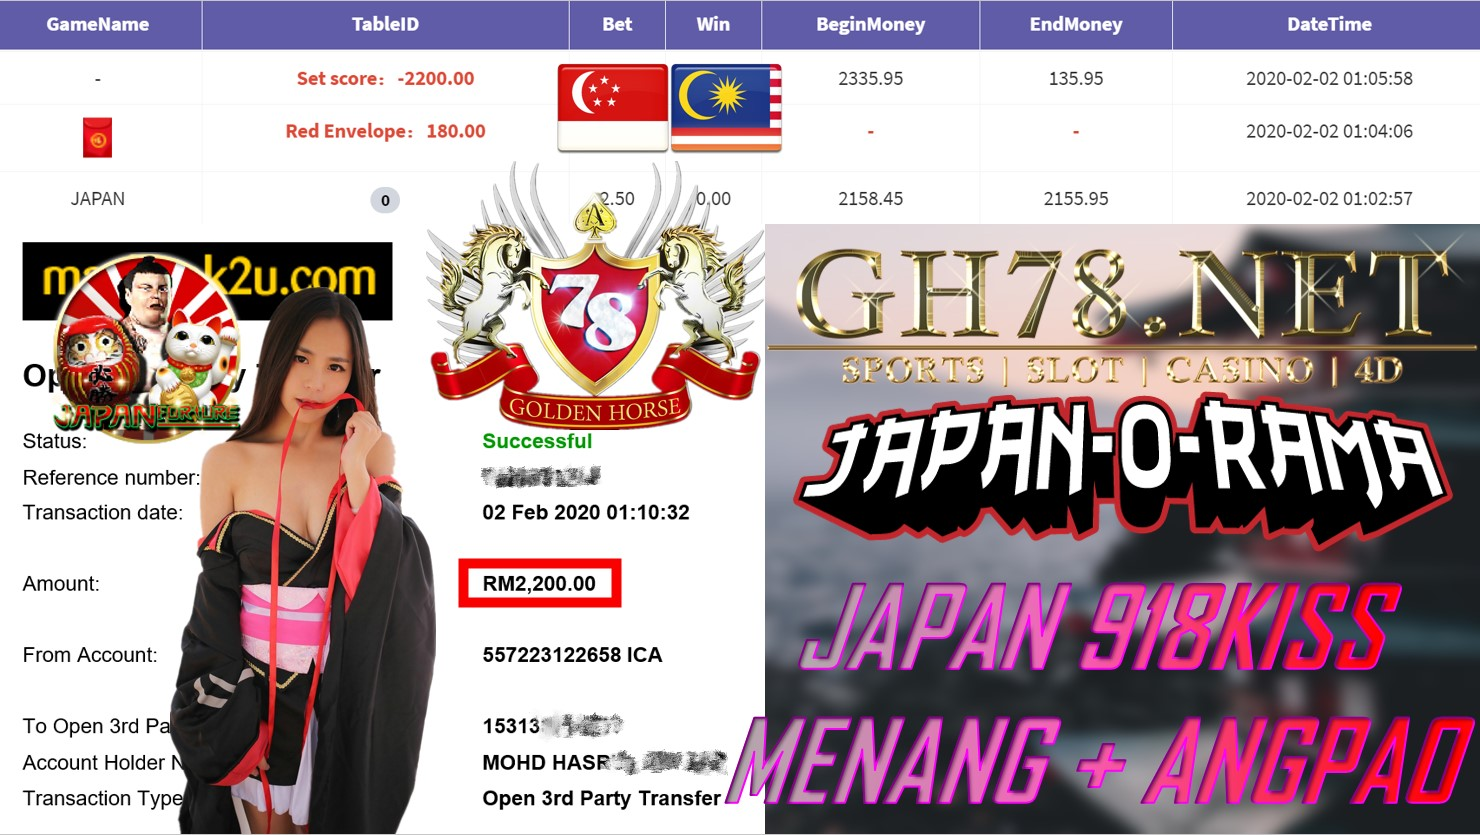 2020 NEW YEAR !!! MEMBER MAIN 918KISS, JAPAN + ANGPAO ,WITHDRAW RM2200 !!!